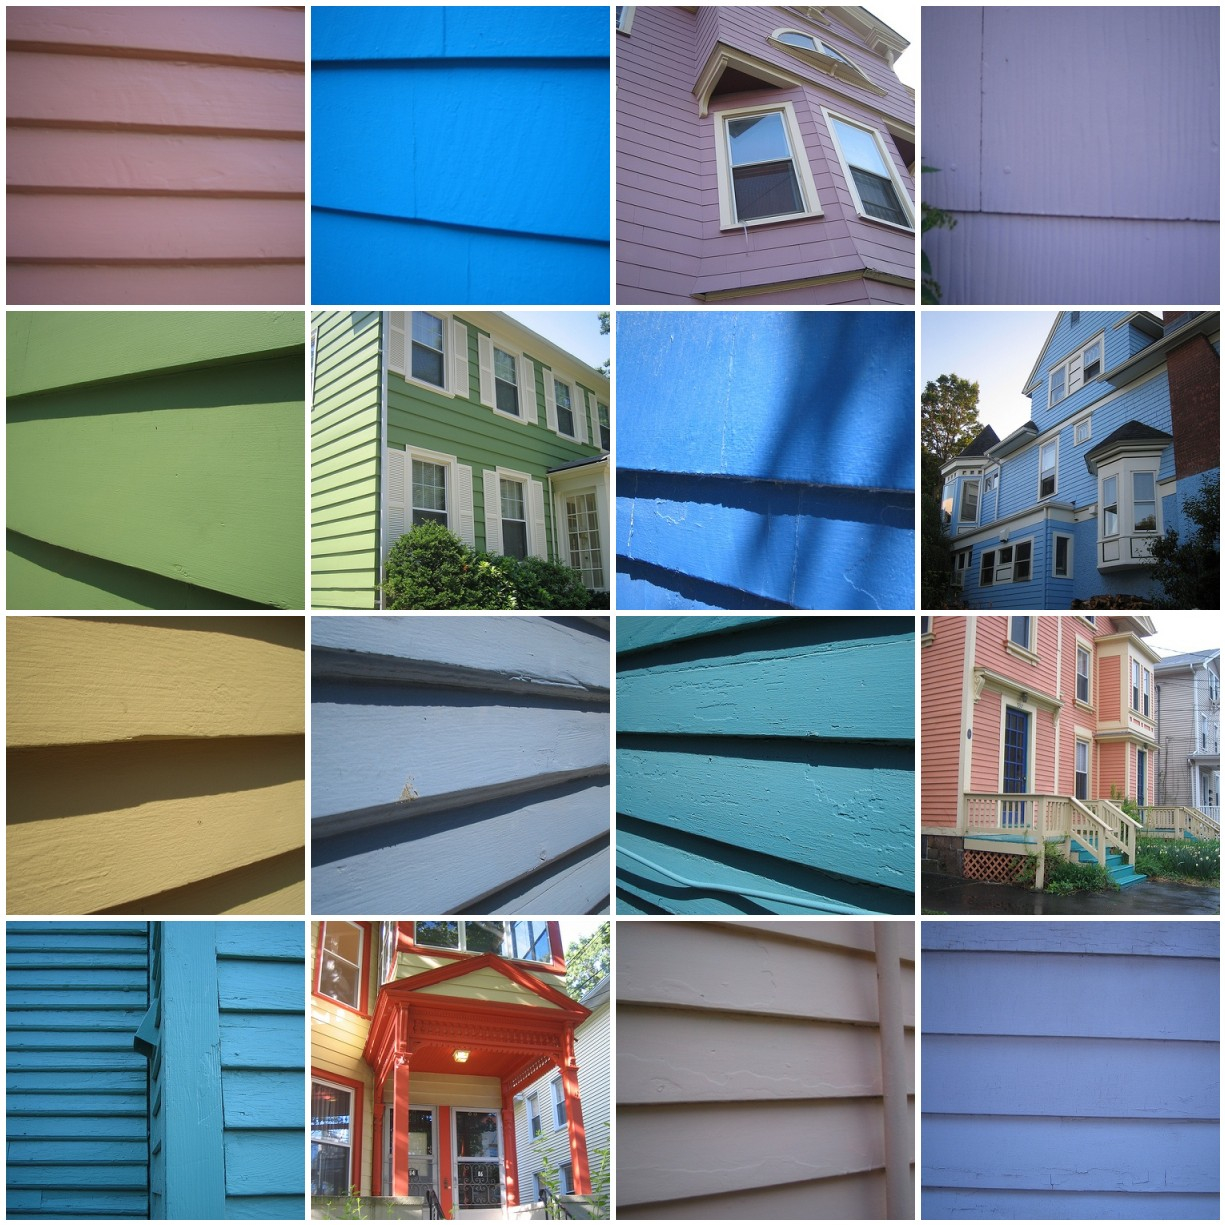 Mosaic of house colors